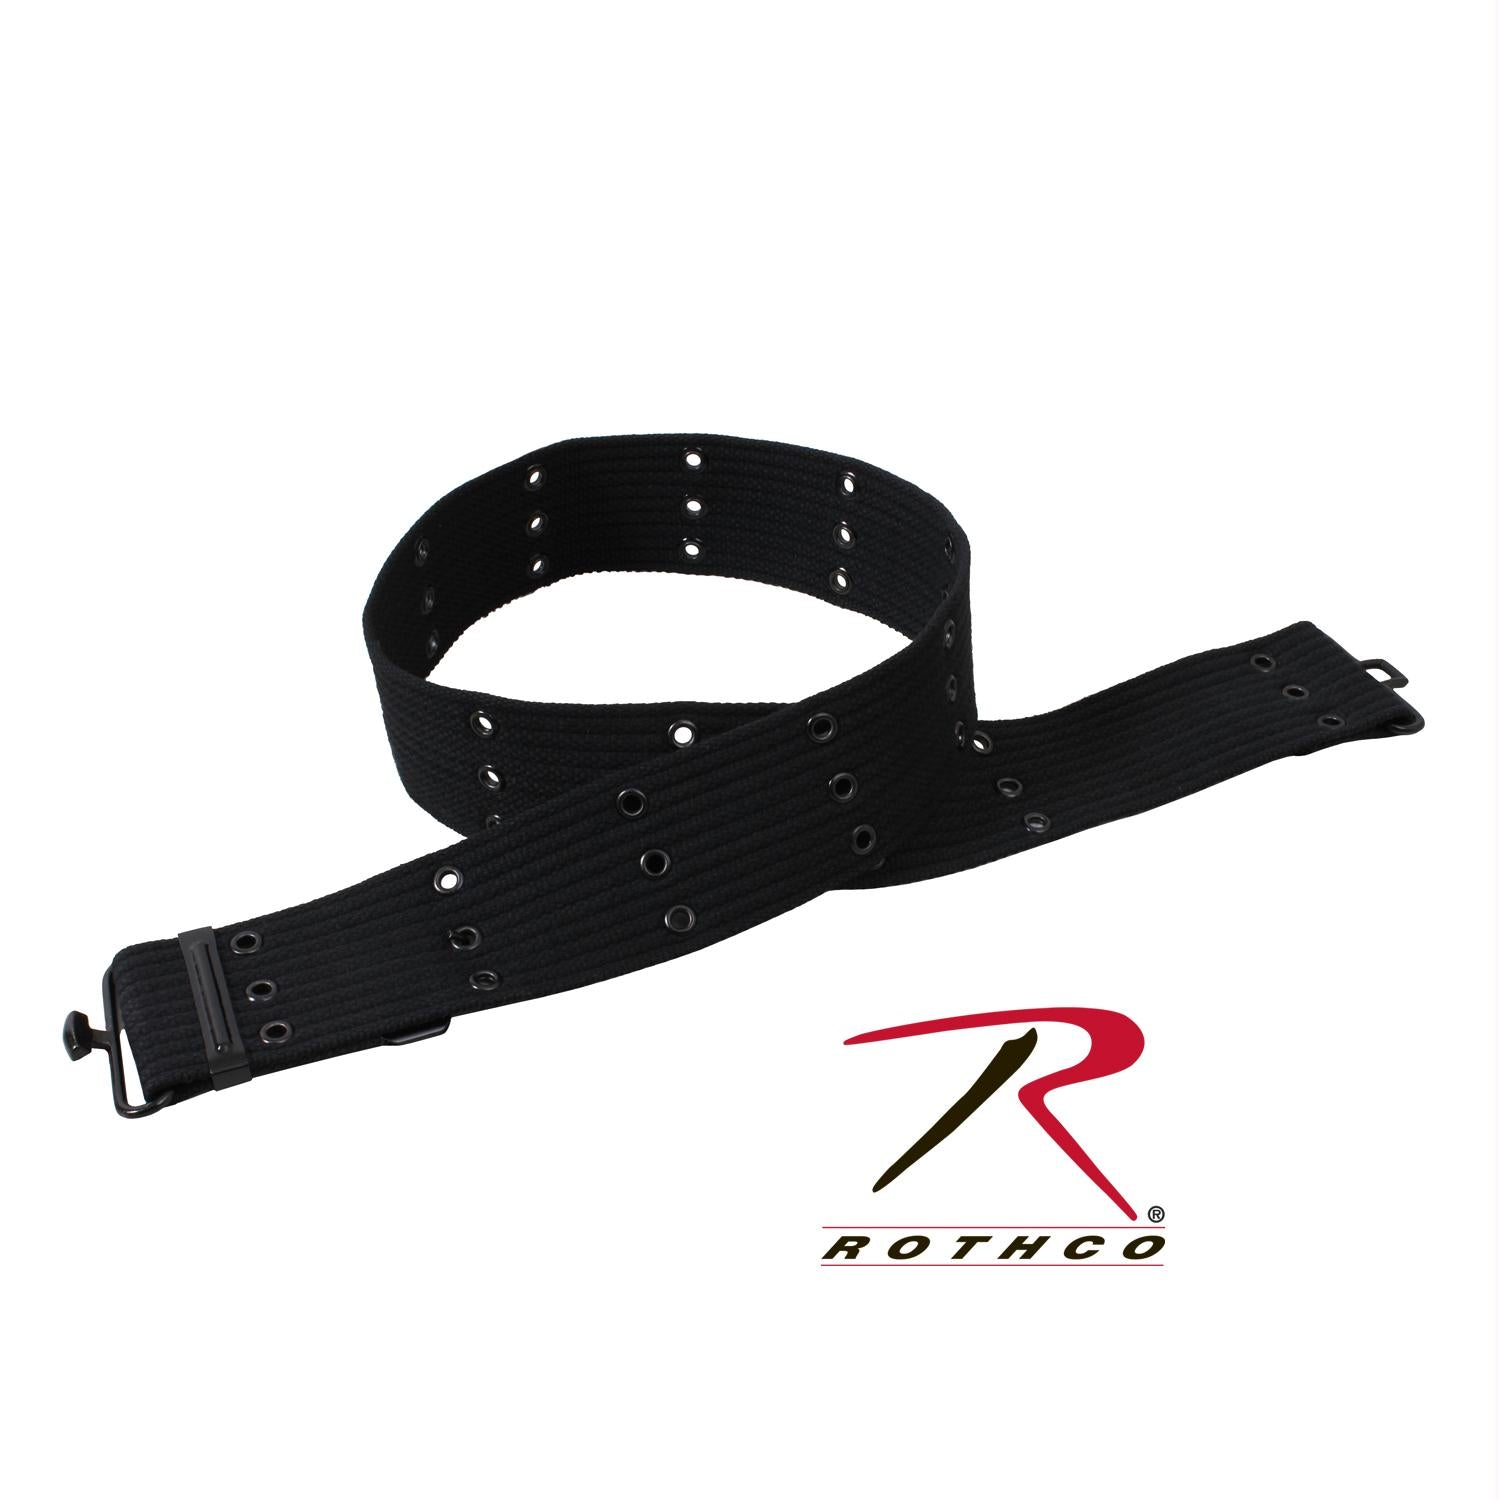 Rothco Military Style Pistol Belts - Black